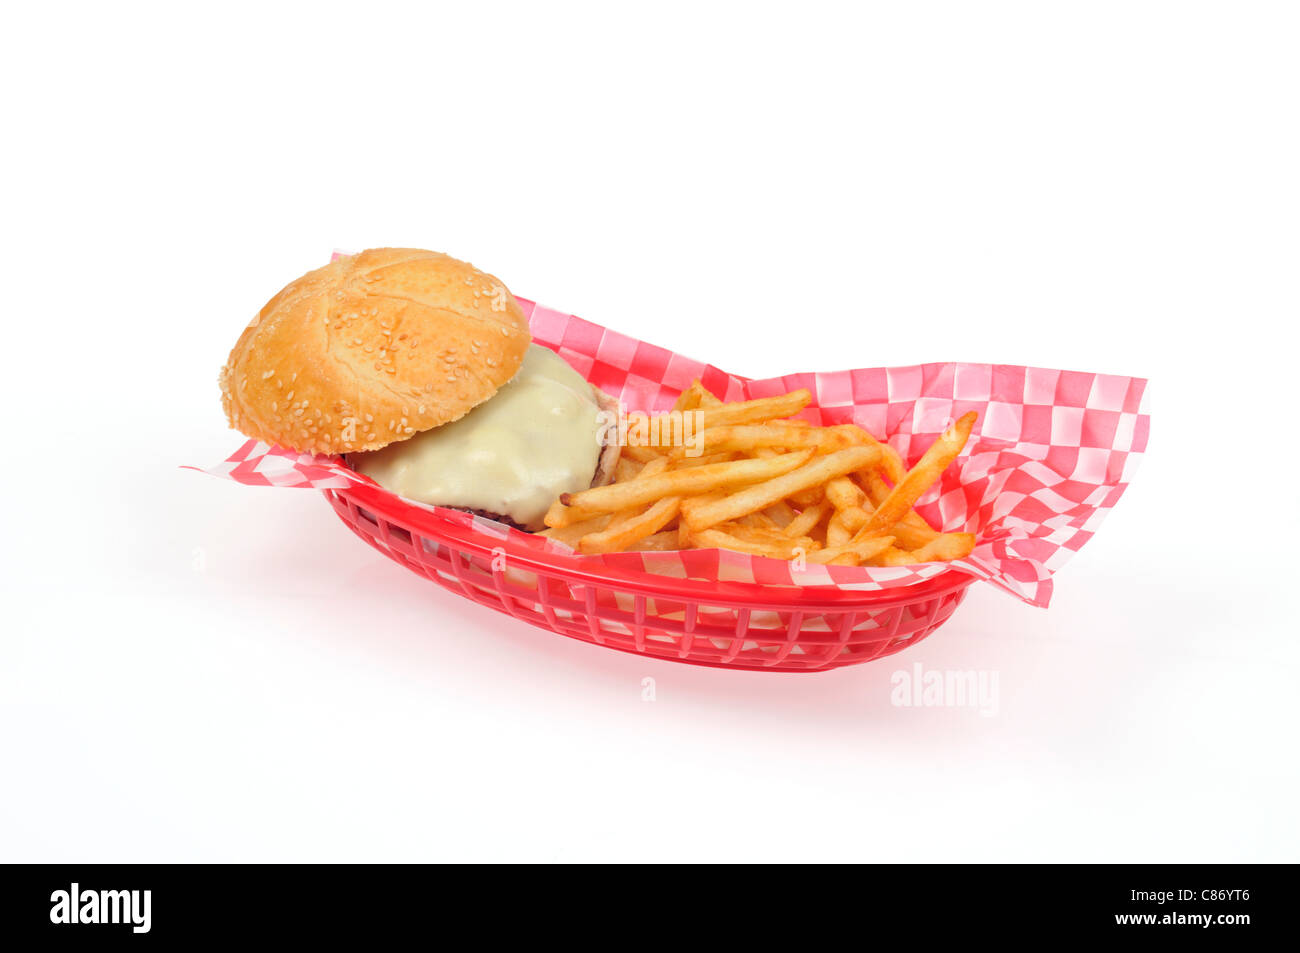 Cheeseburger with french fries in a red plastic  retro basket on white background, cut out. USA - Stock Image